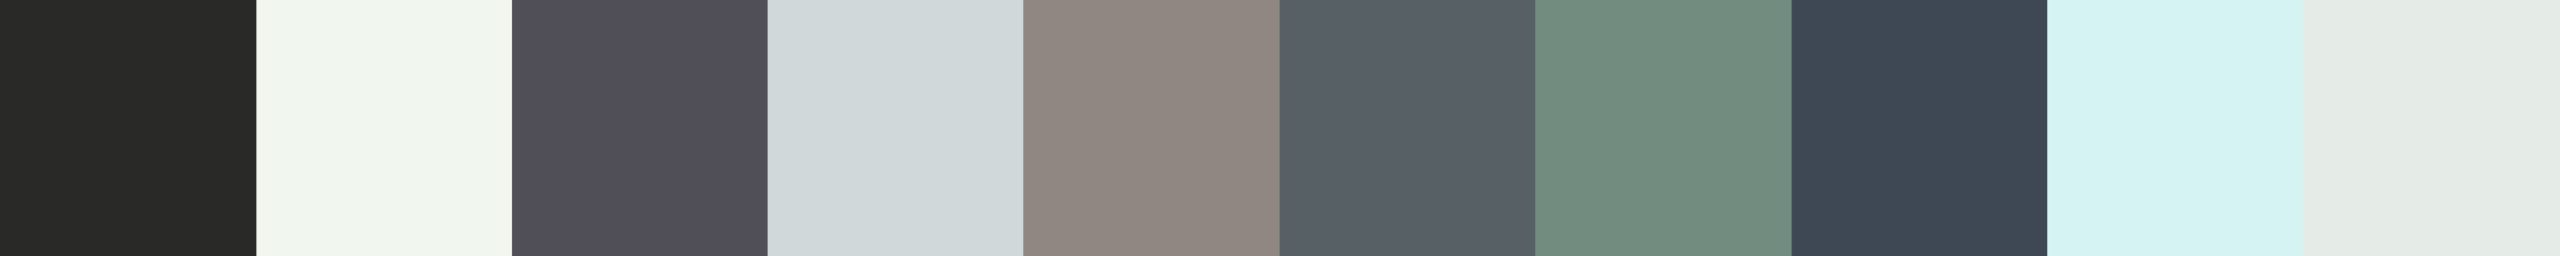 529 Dypna Color Palette